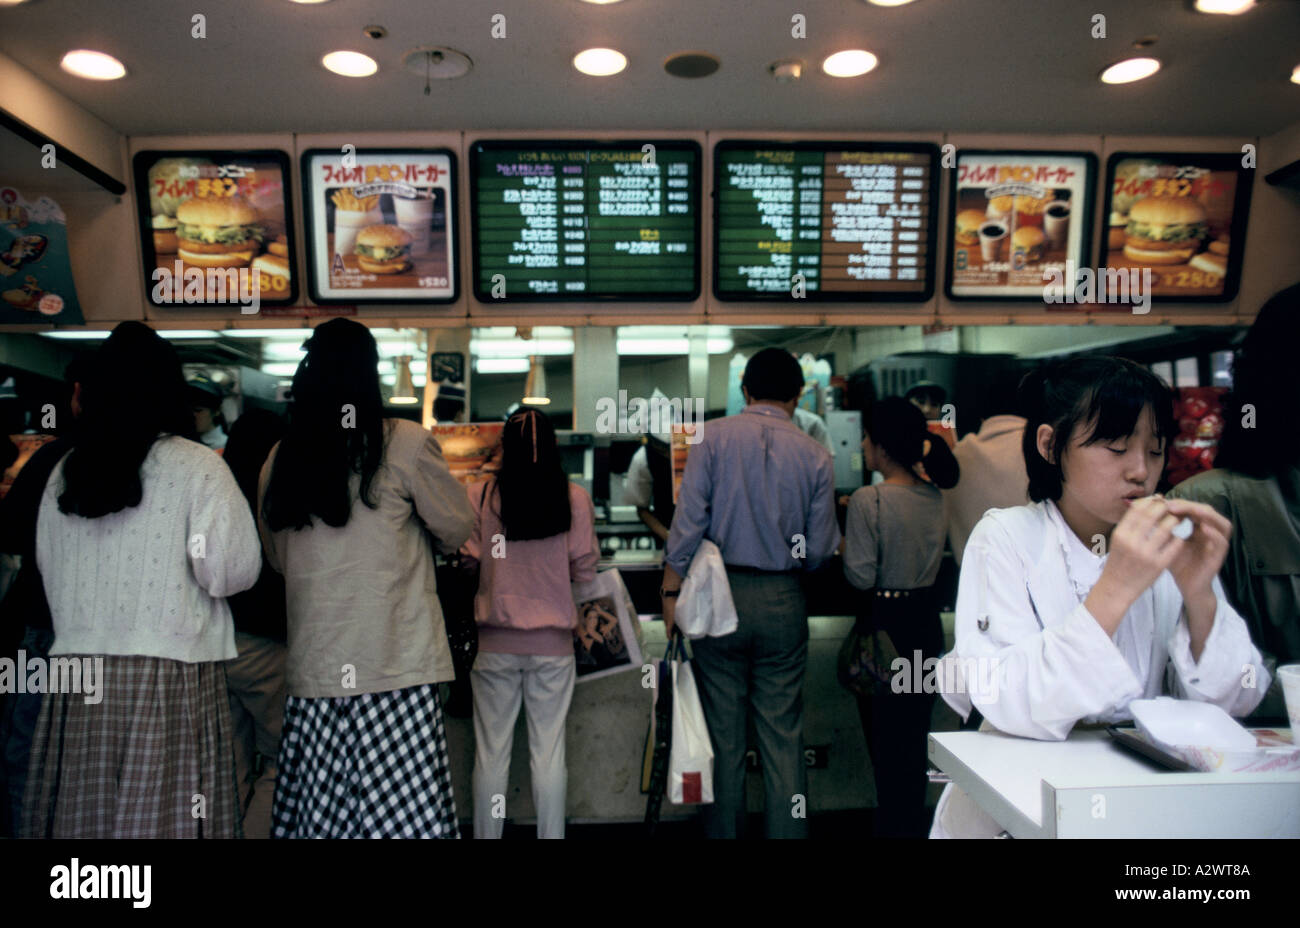 people ordering at the counter of a mcdonalds restaurant tokyo japan - Stock Image